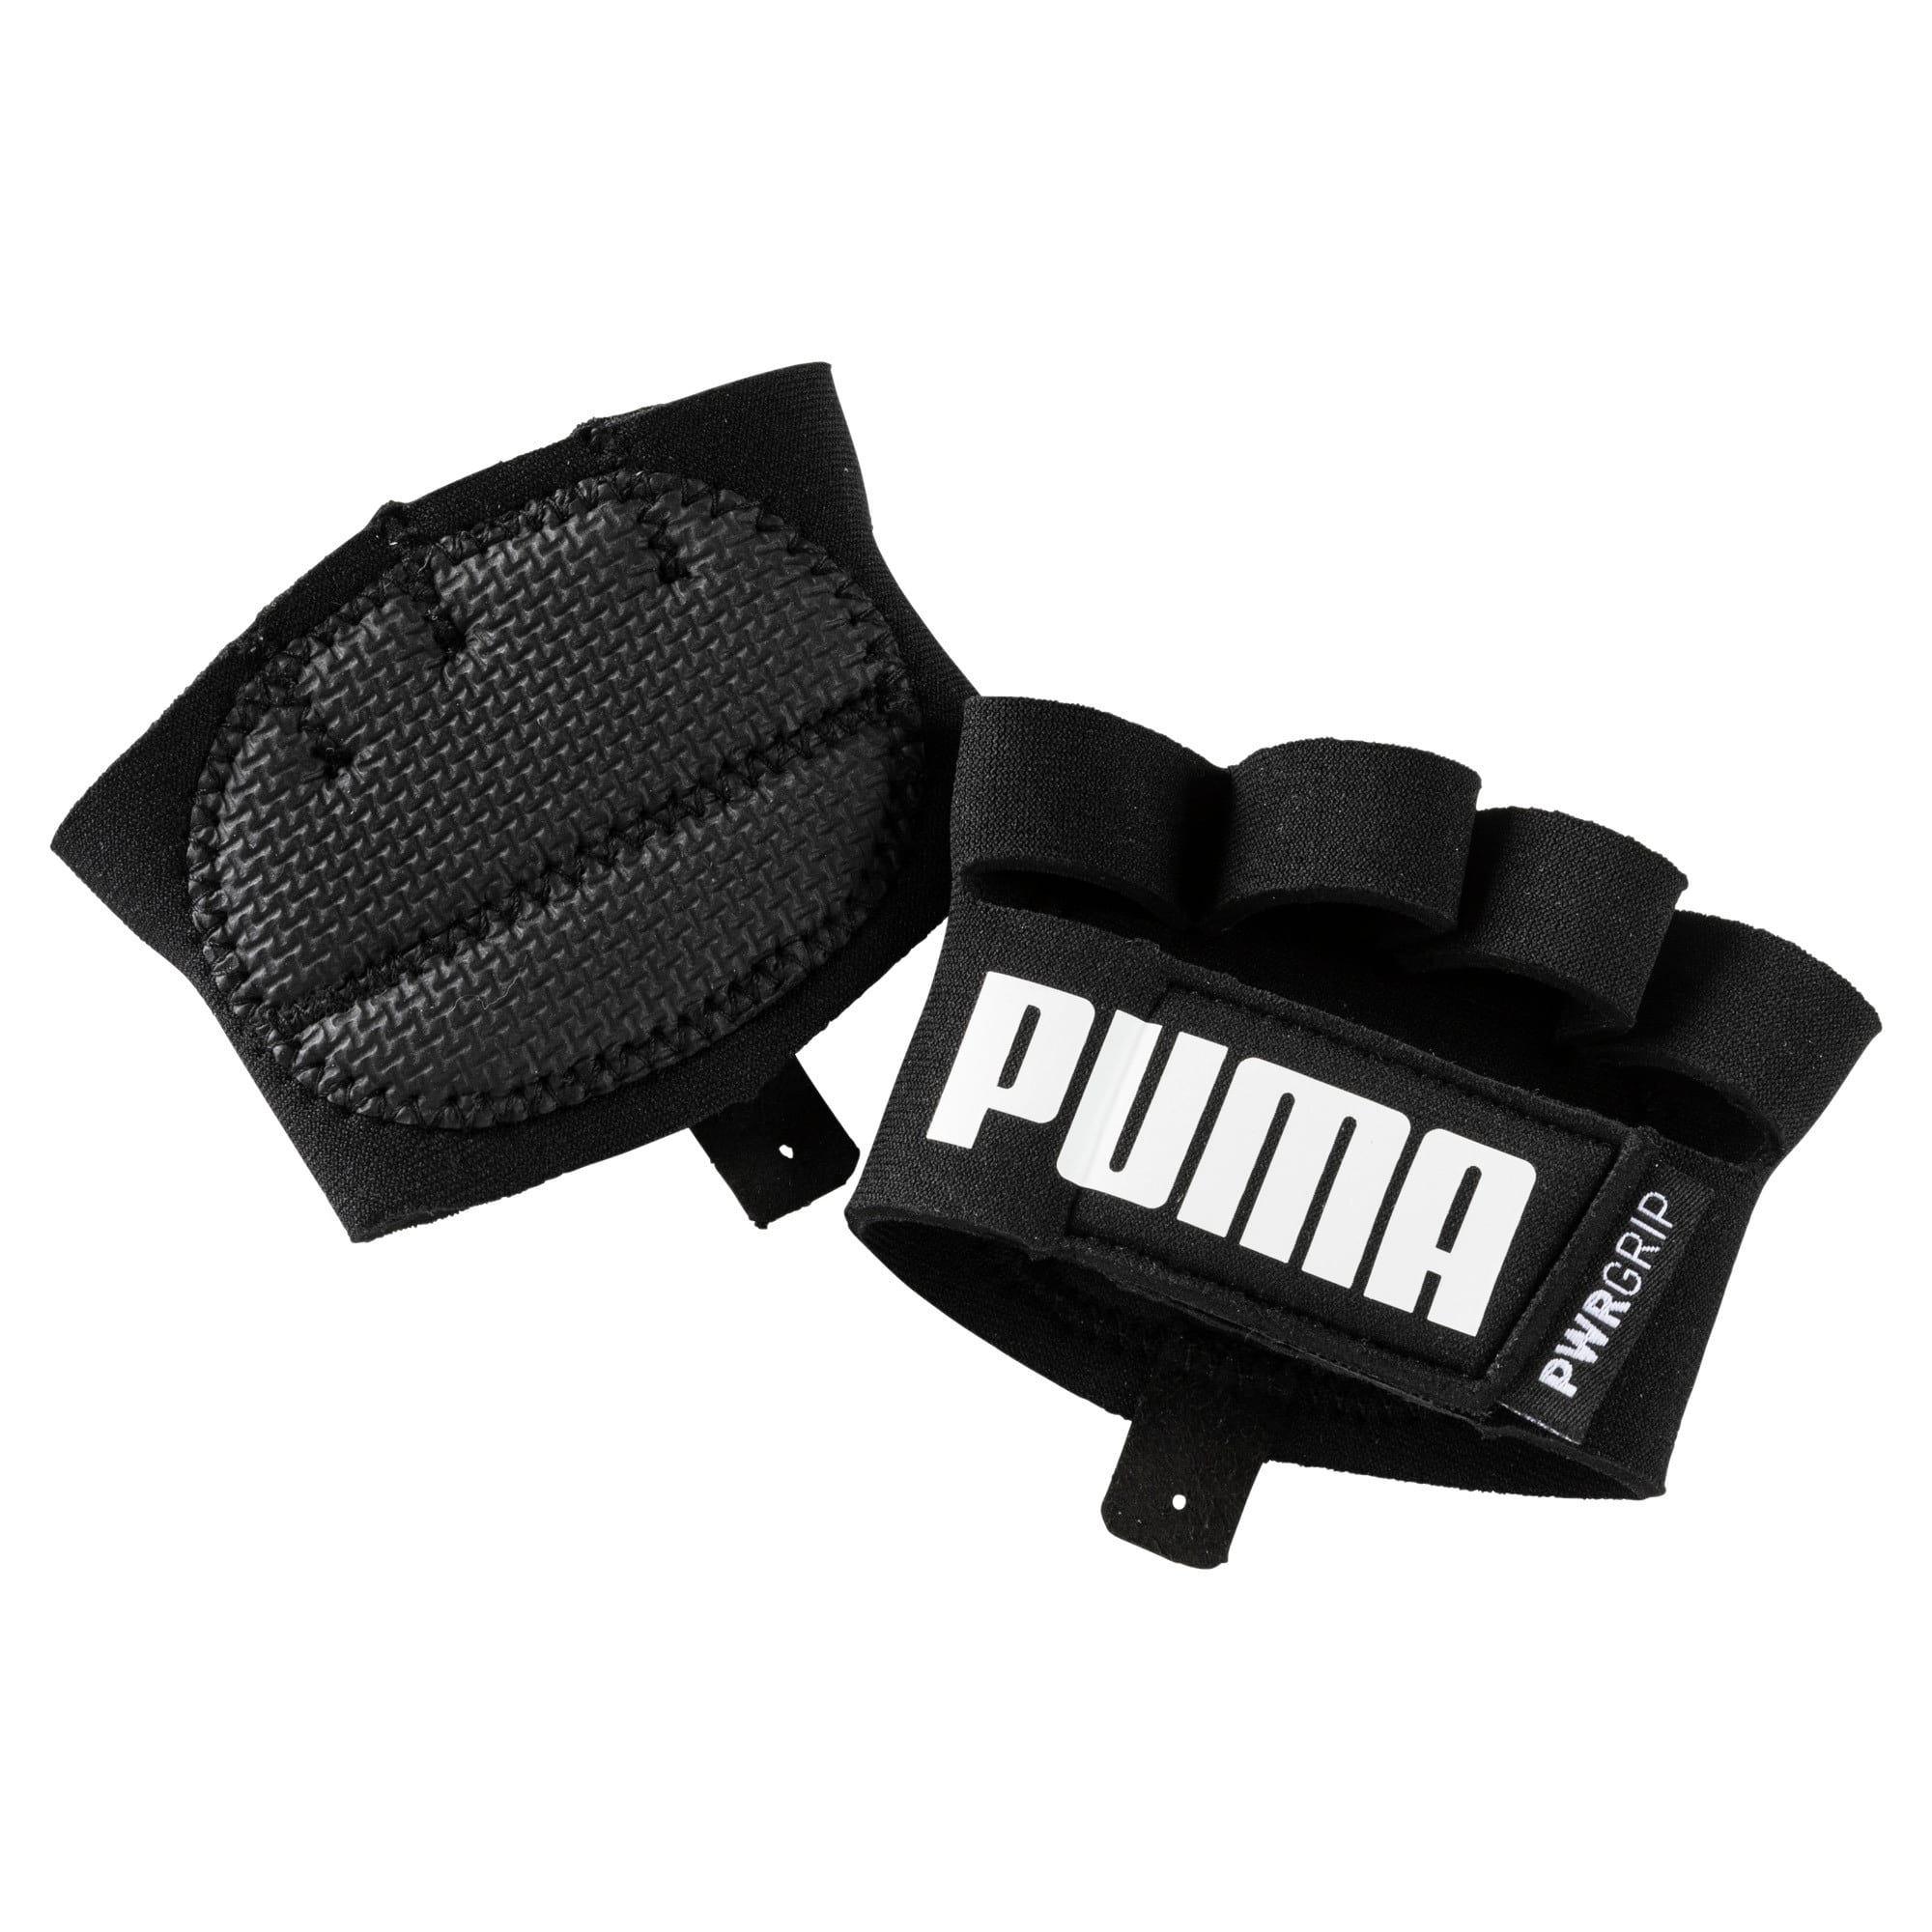 Thumbnail 1 of Essential Training Grip Gloves, Puma Black-Puma White, medium